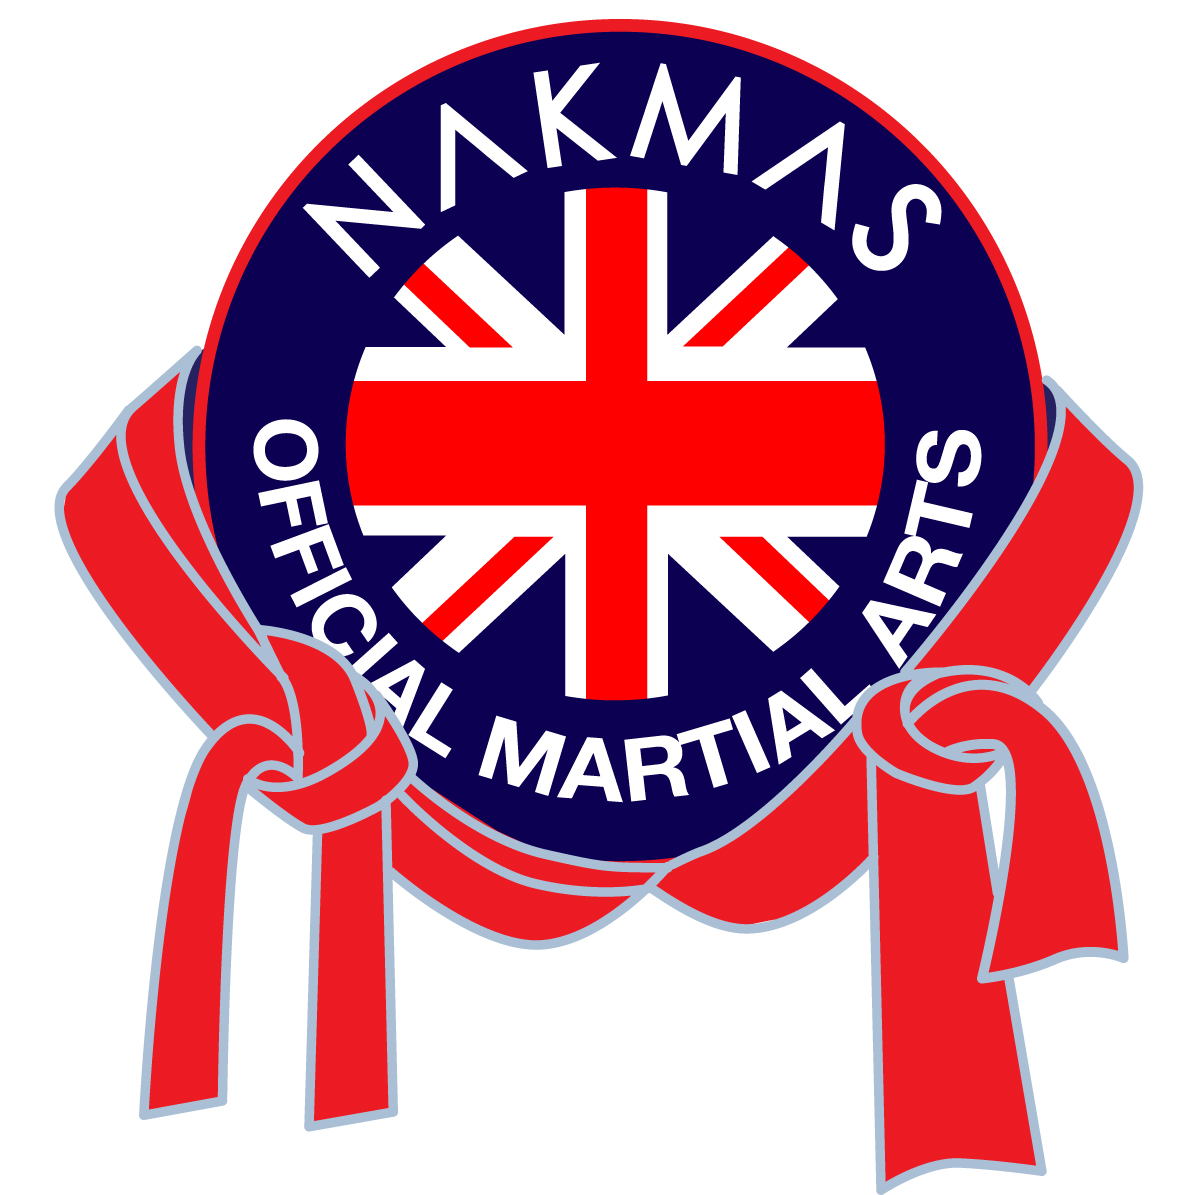 NAKMAS Official Martial Arts